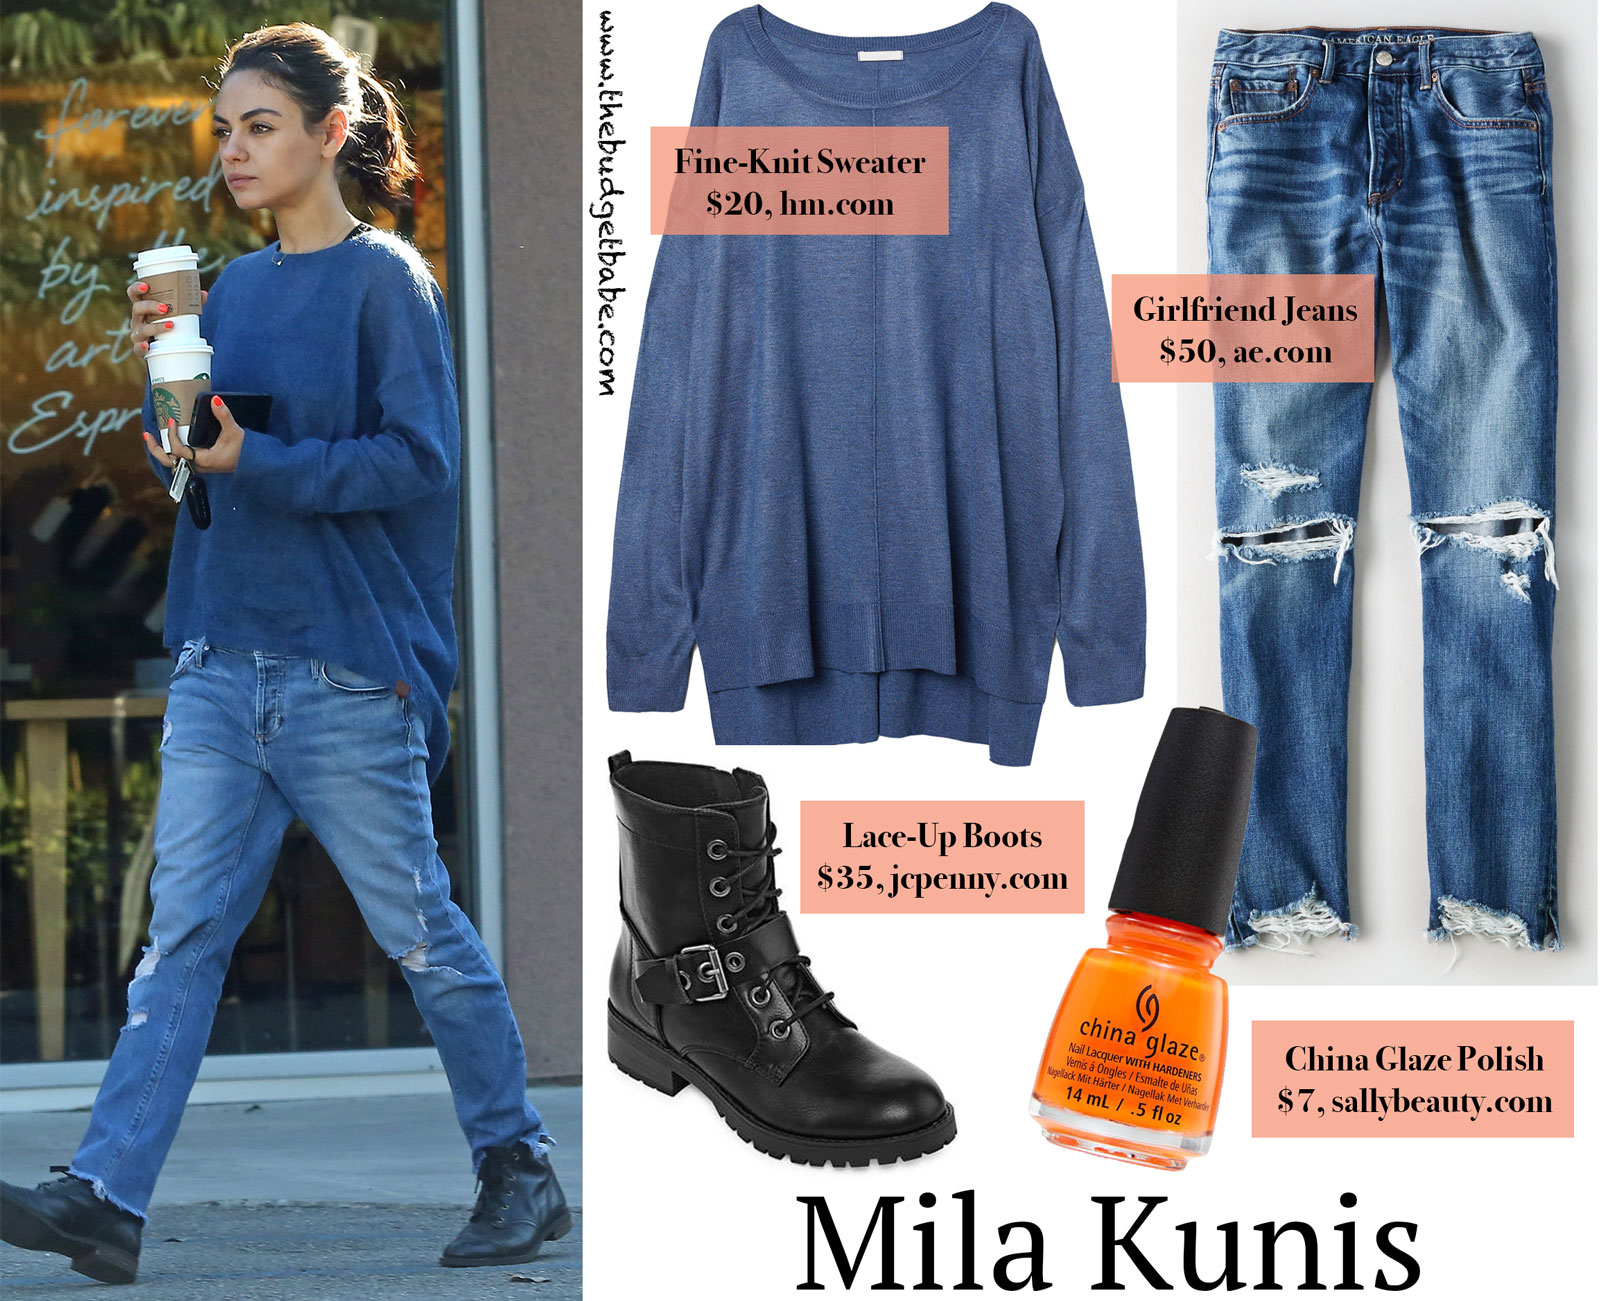 Mila Kunis One Teapsoon Jumper Look for Less